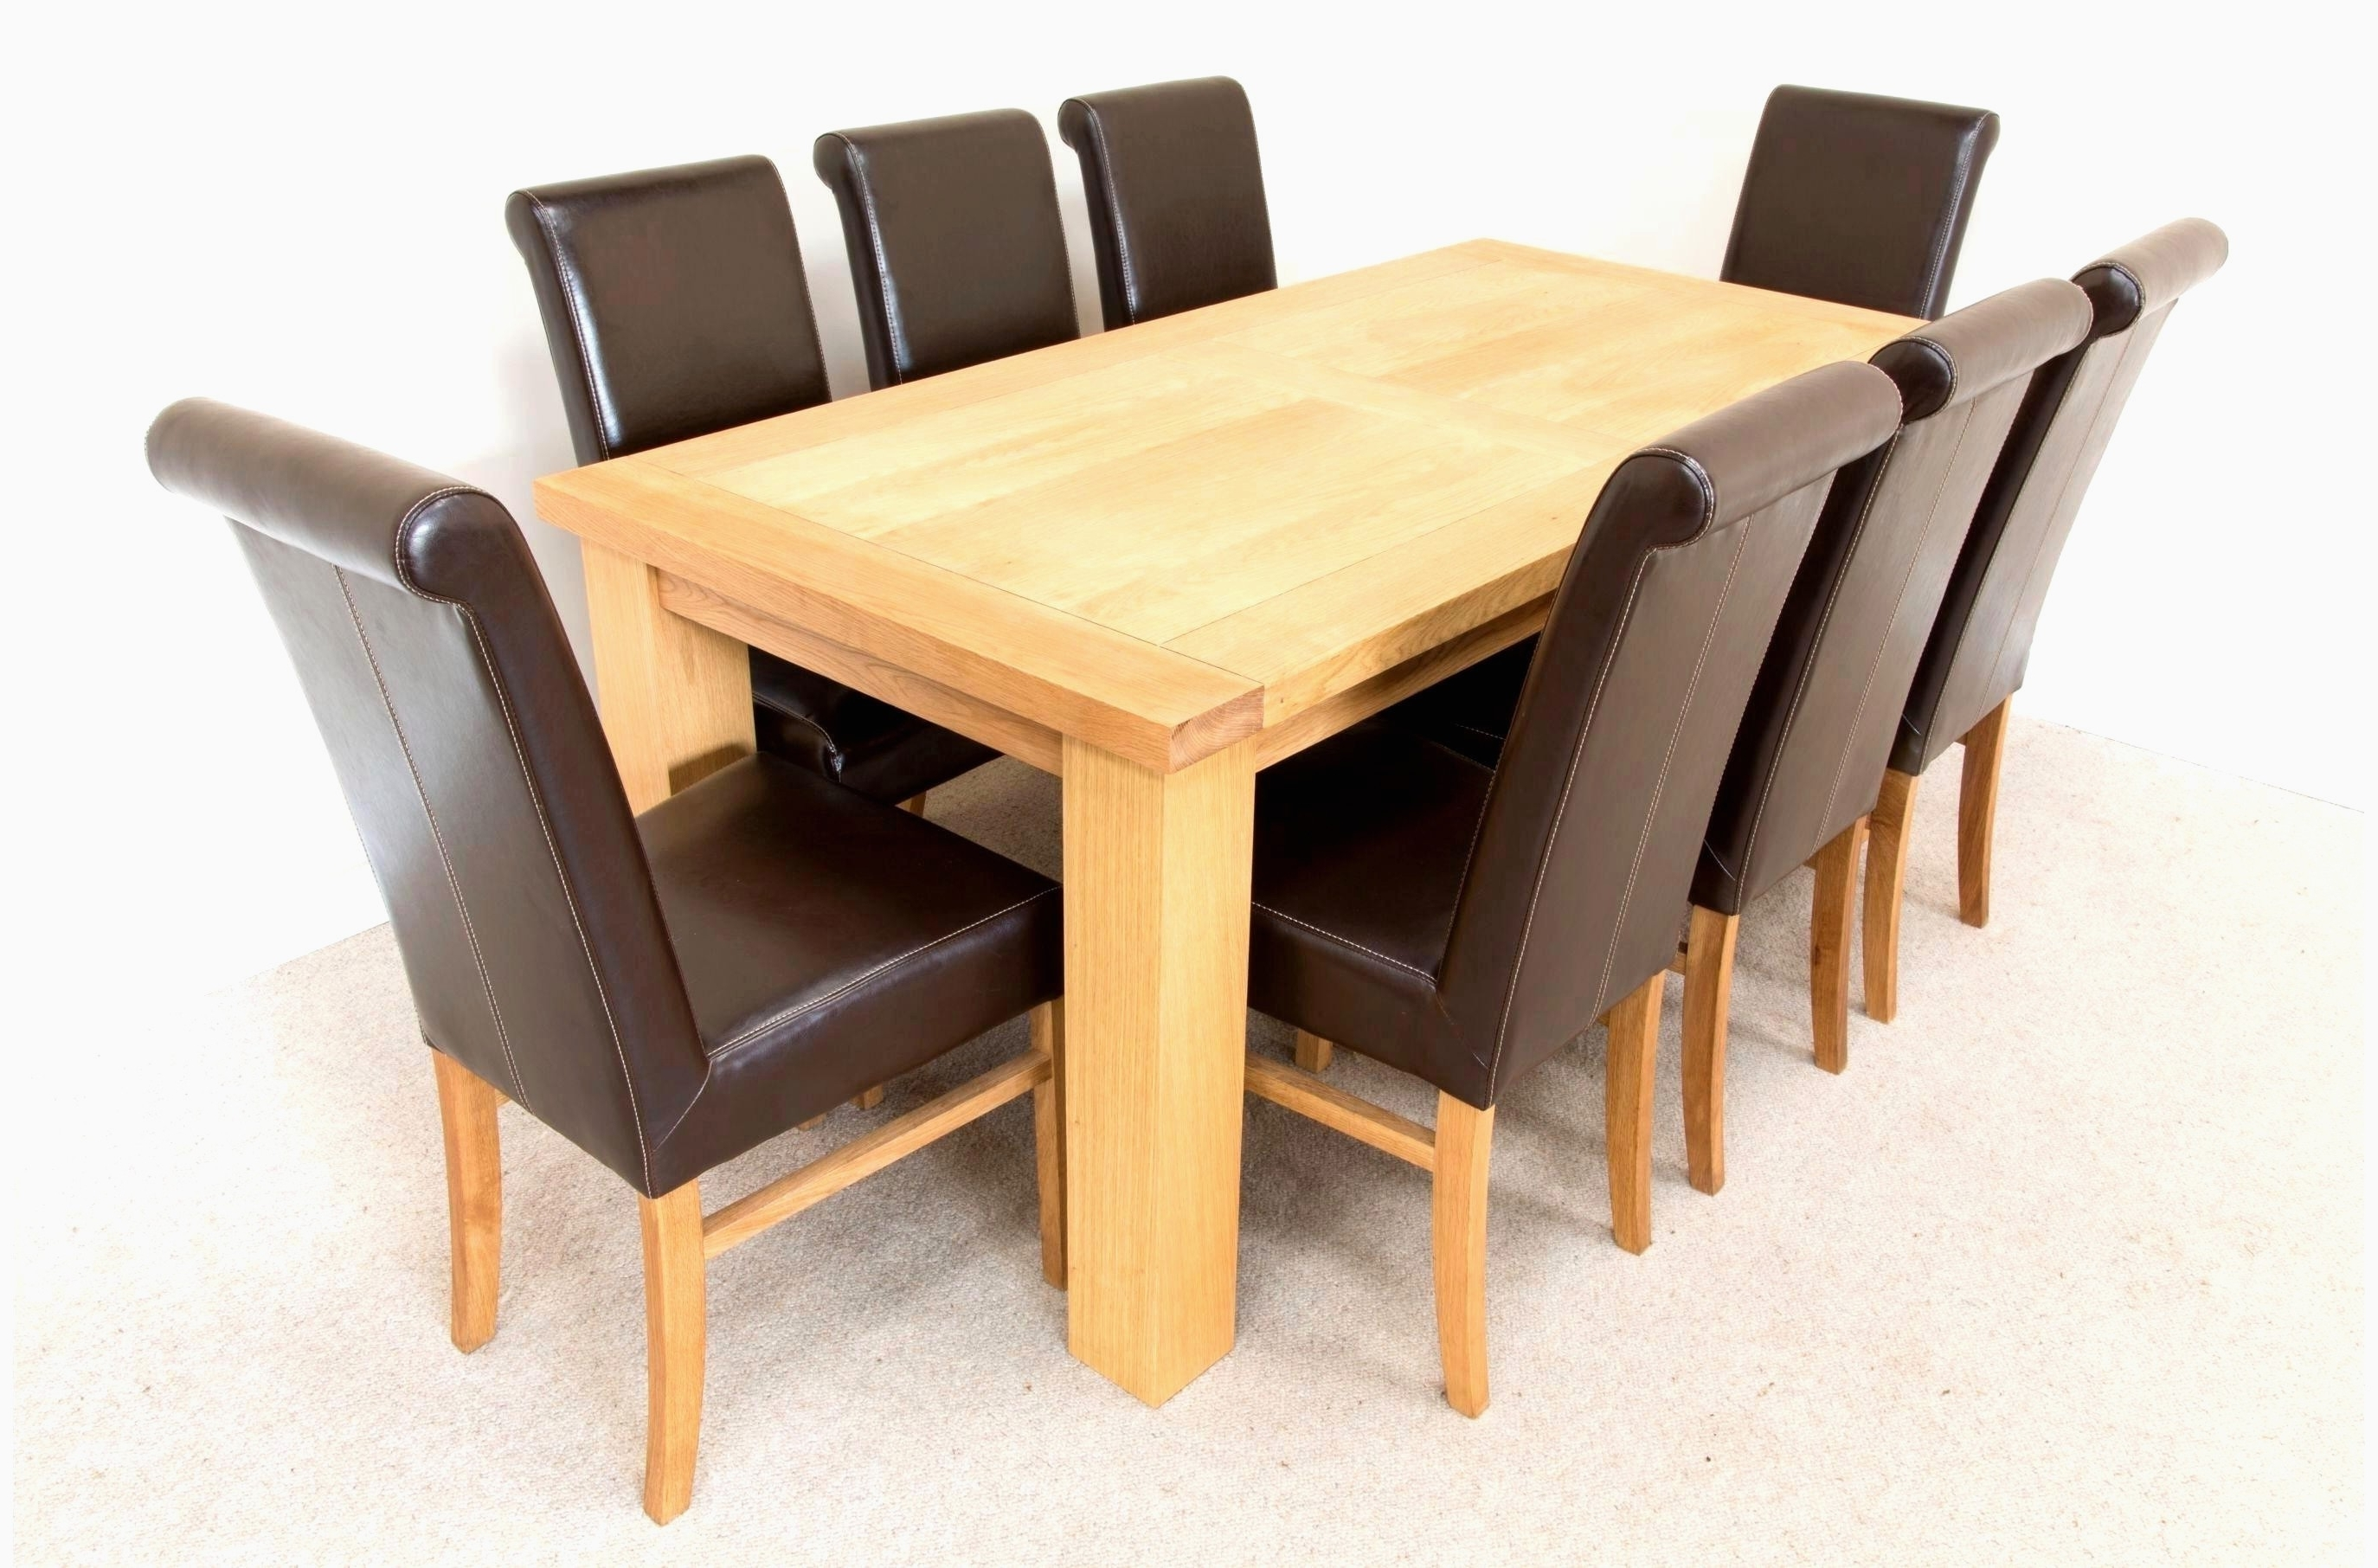 Solid Oak Dining Room Table And 8 Chairs Fresh 28 Classy Raw Wood With Most Current Oak Dining Tables 8 Chairs (View 21 of 25)